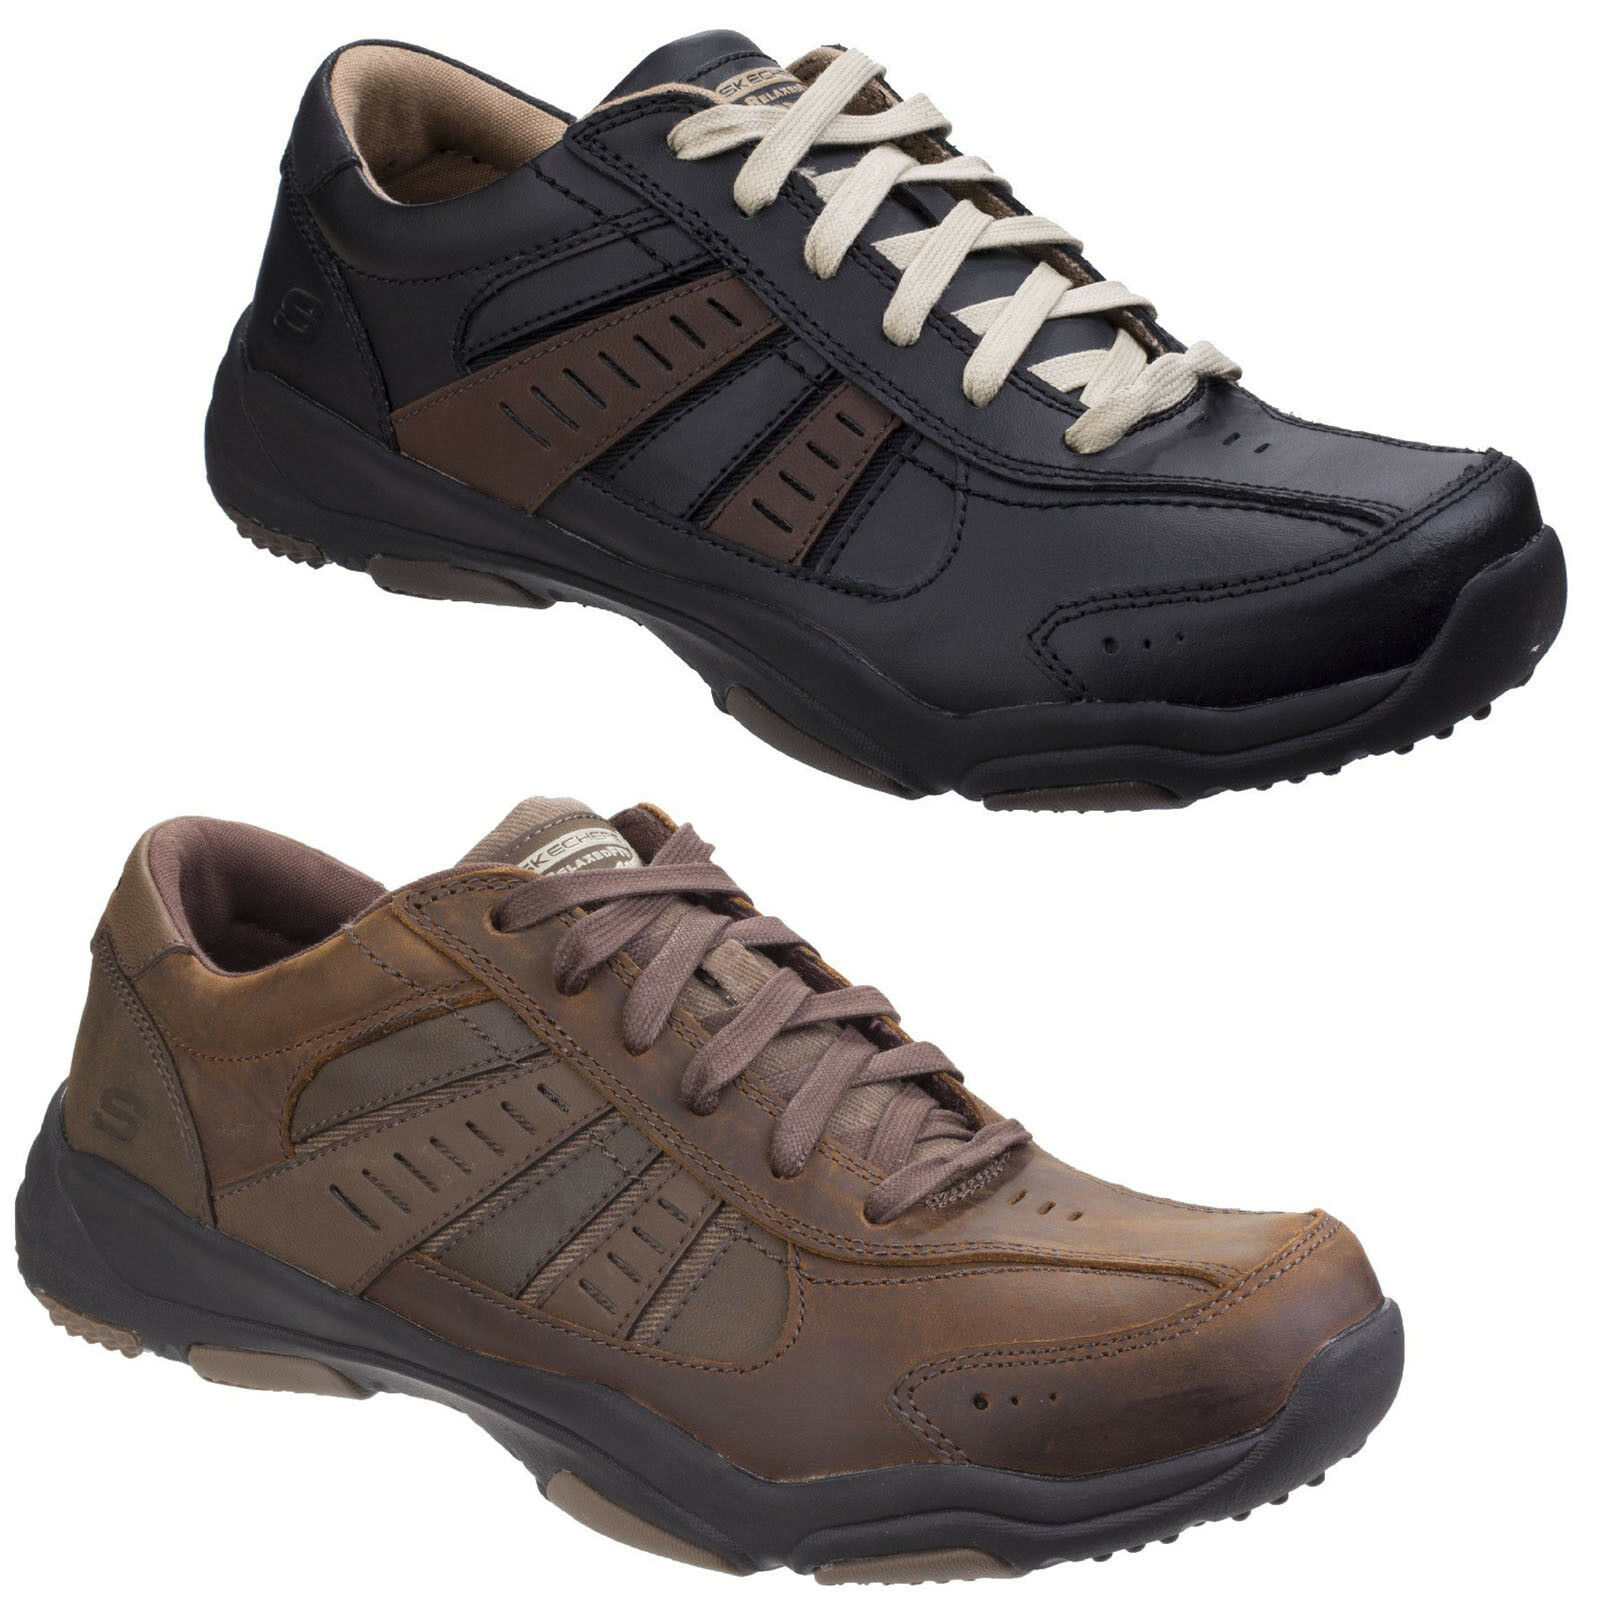 Skechers Larson Nerick Trainers Mens Casual Leather Memory Foam Lace Up shoes